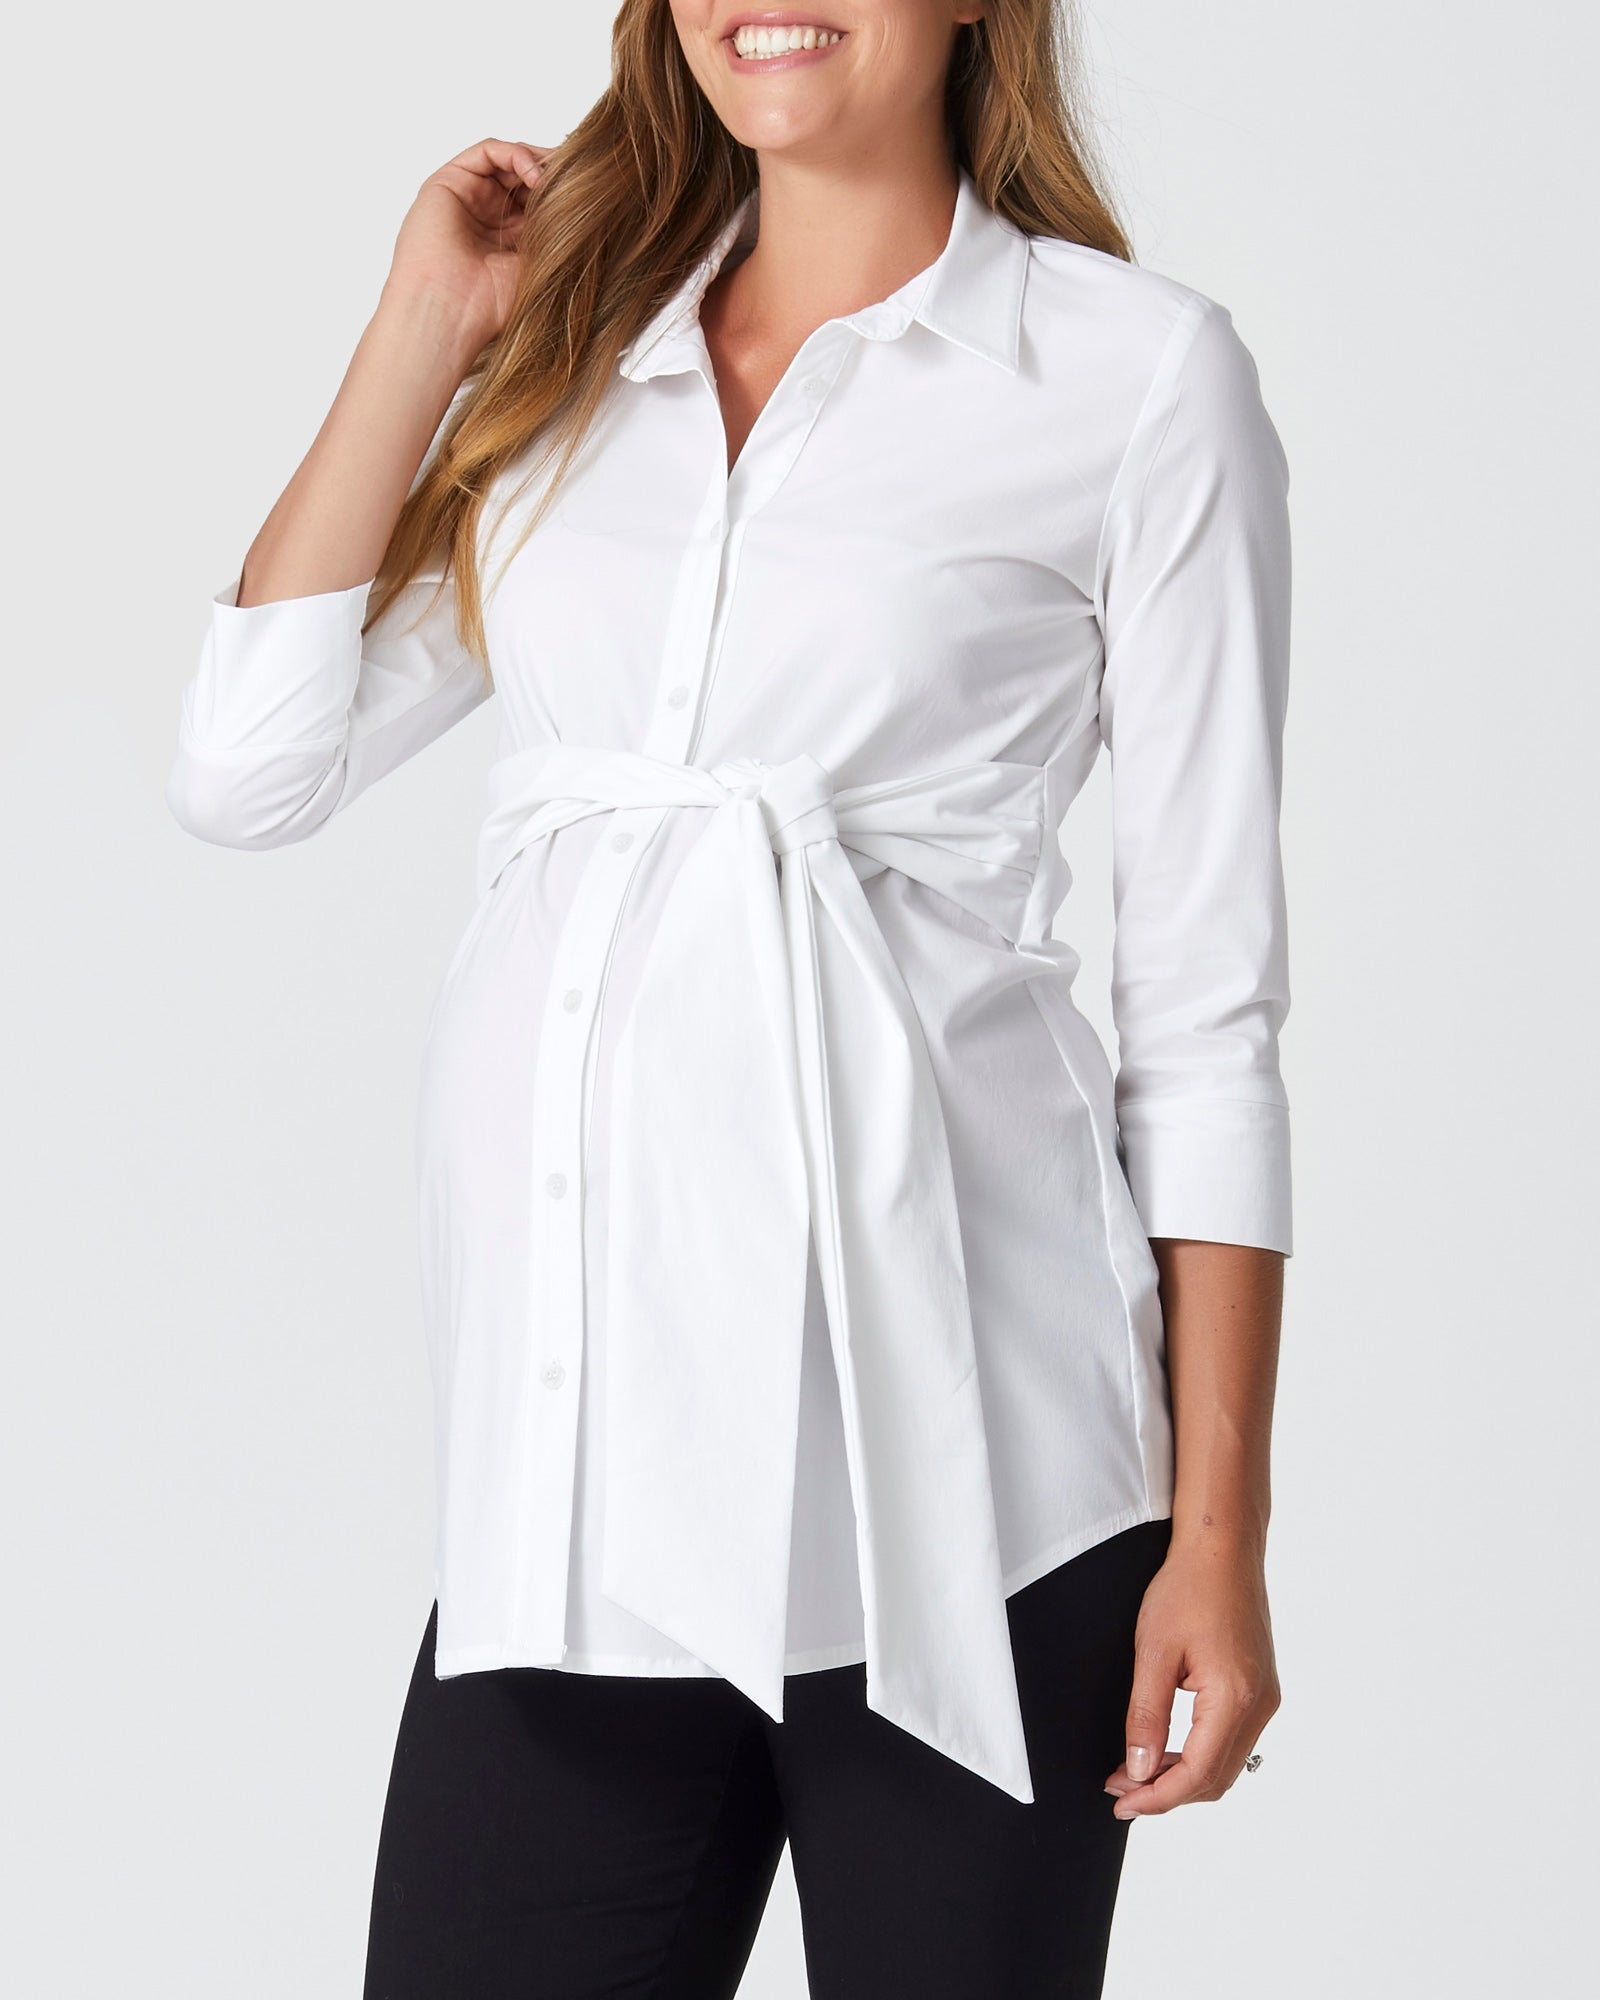 Mid Sleeve Tie Shirt (outlet)